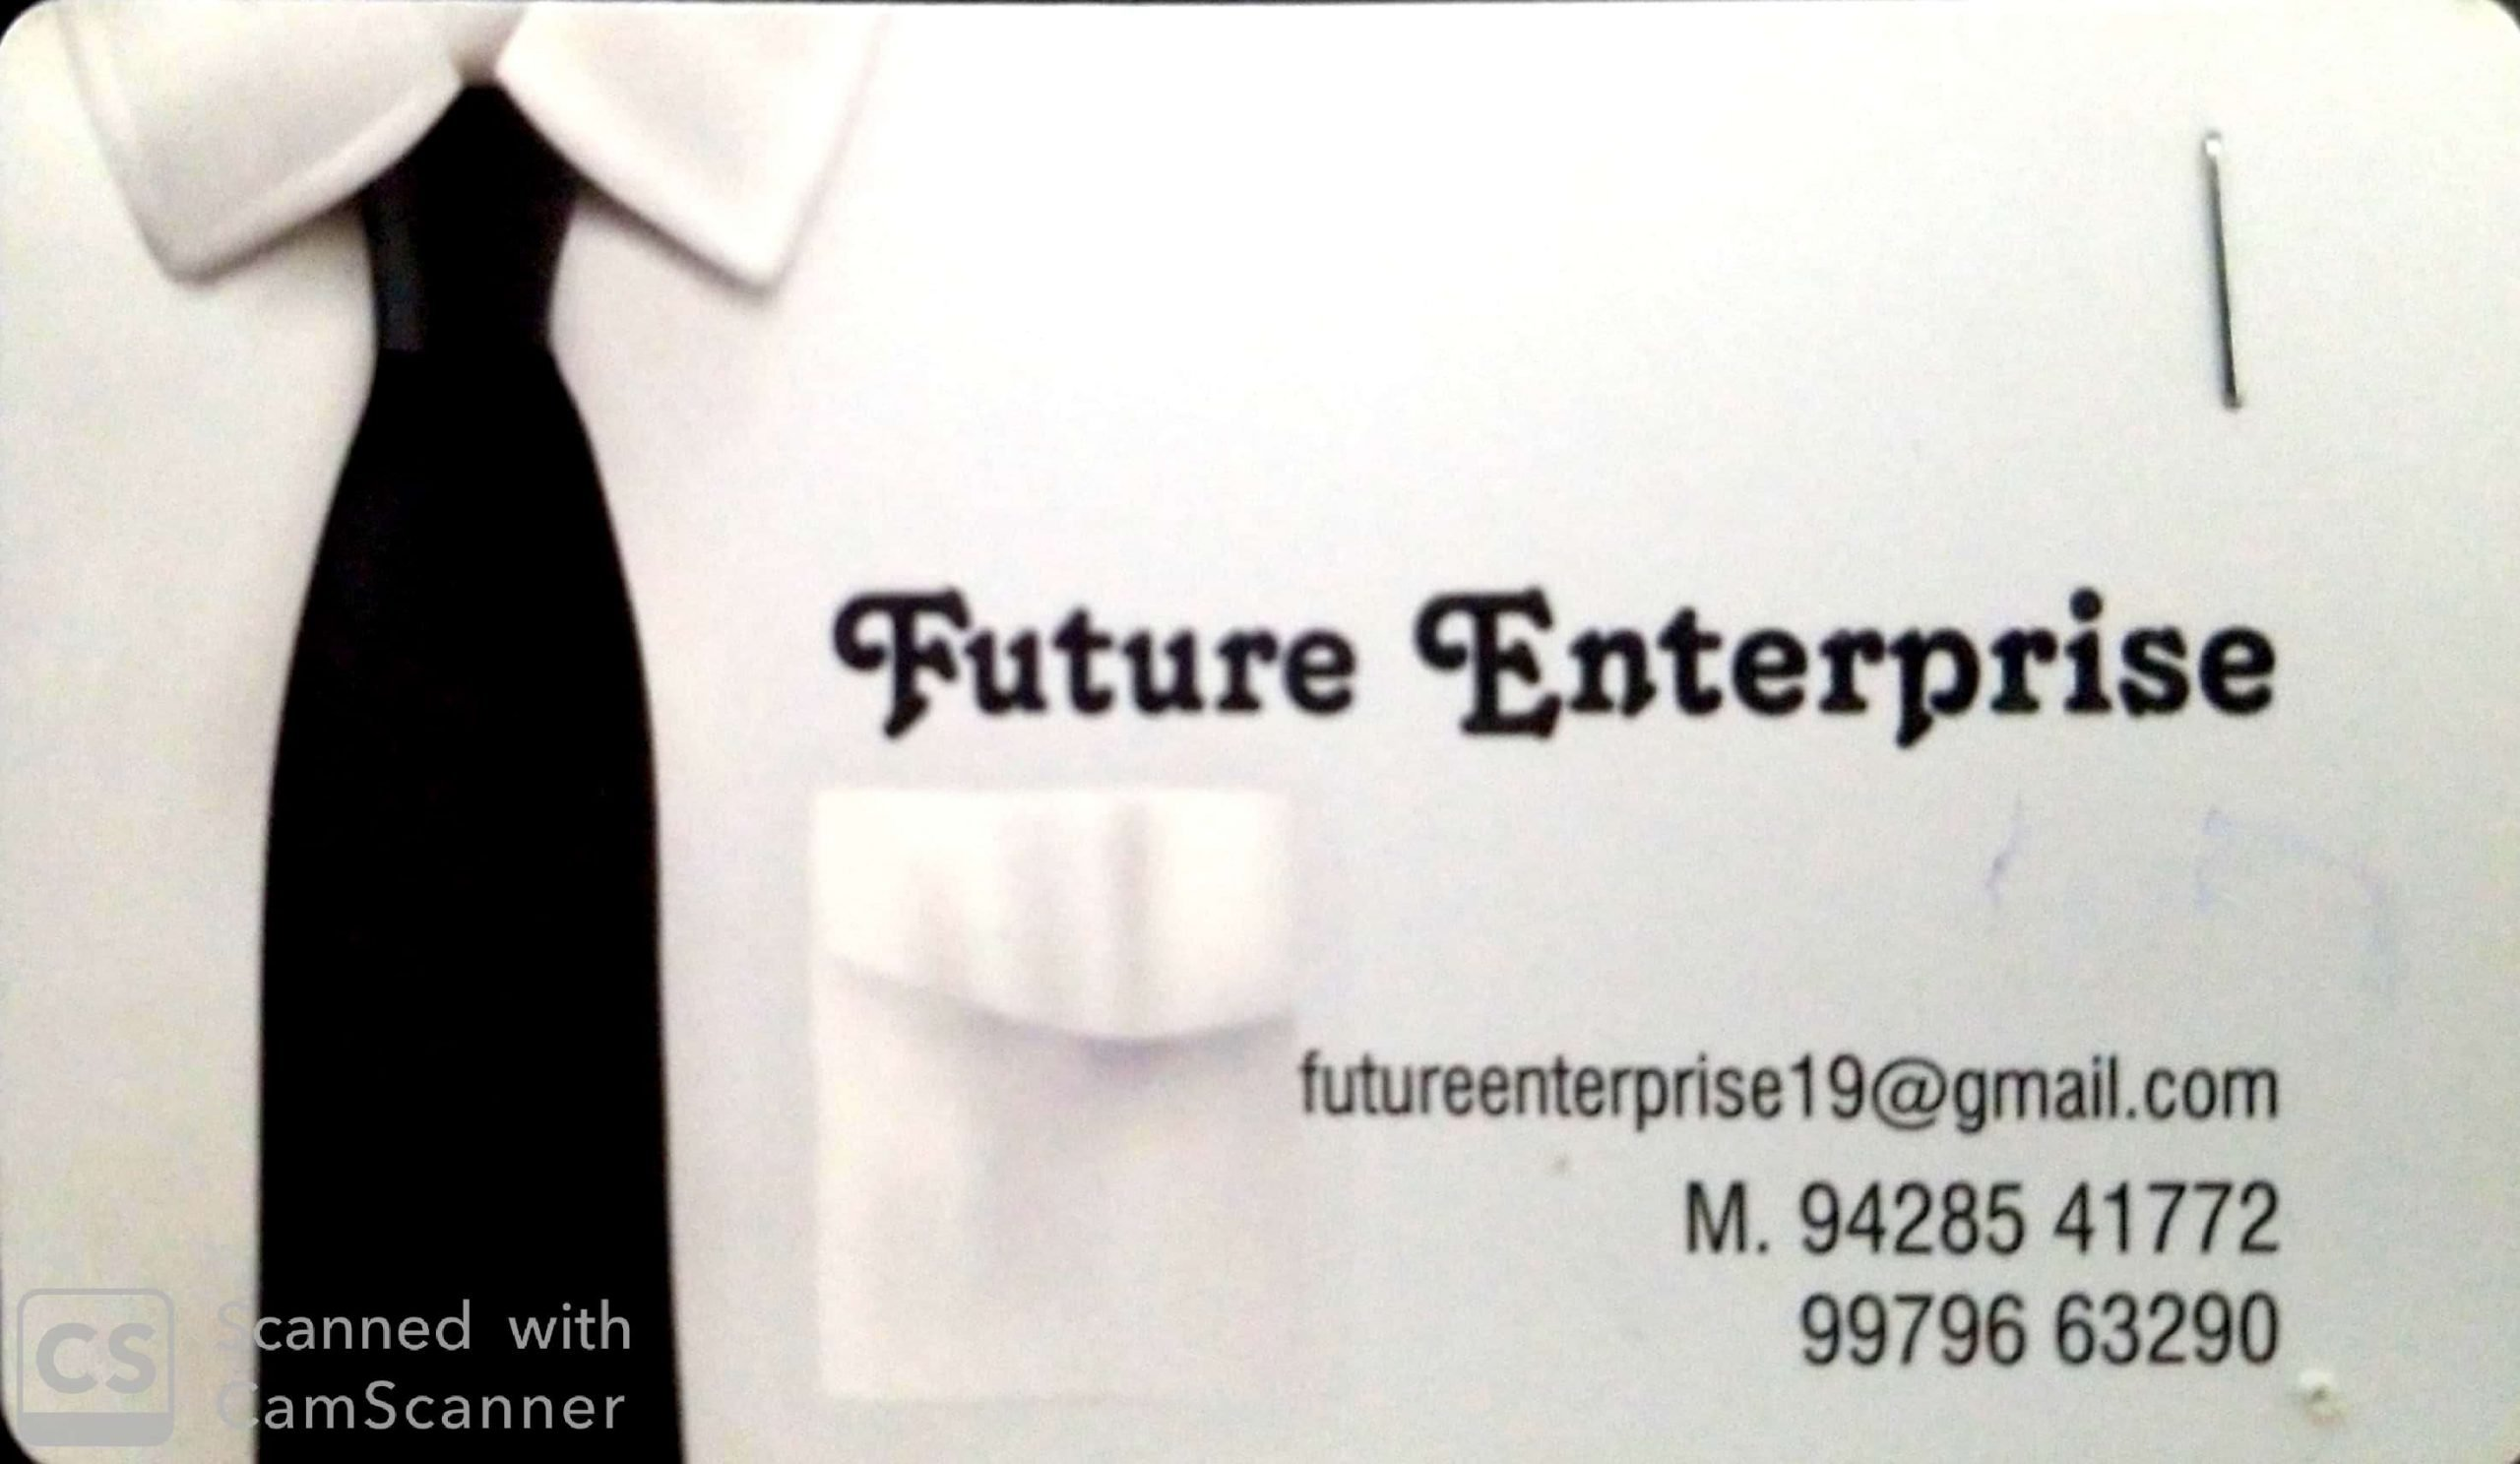 Future Enterprise